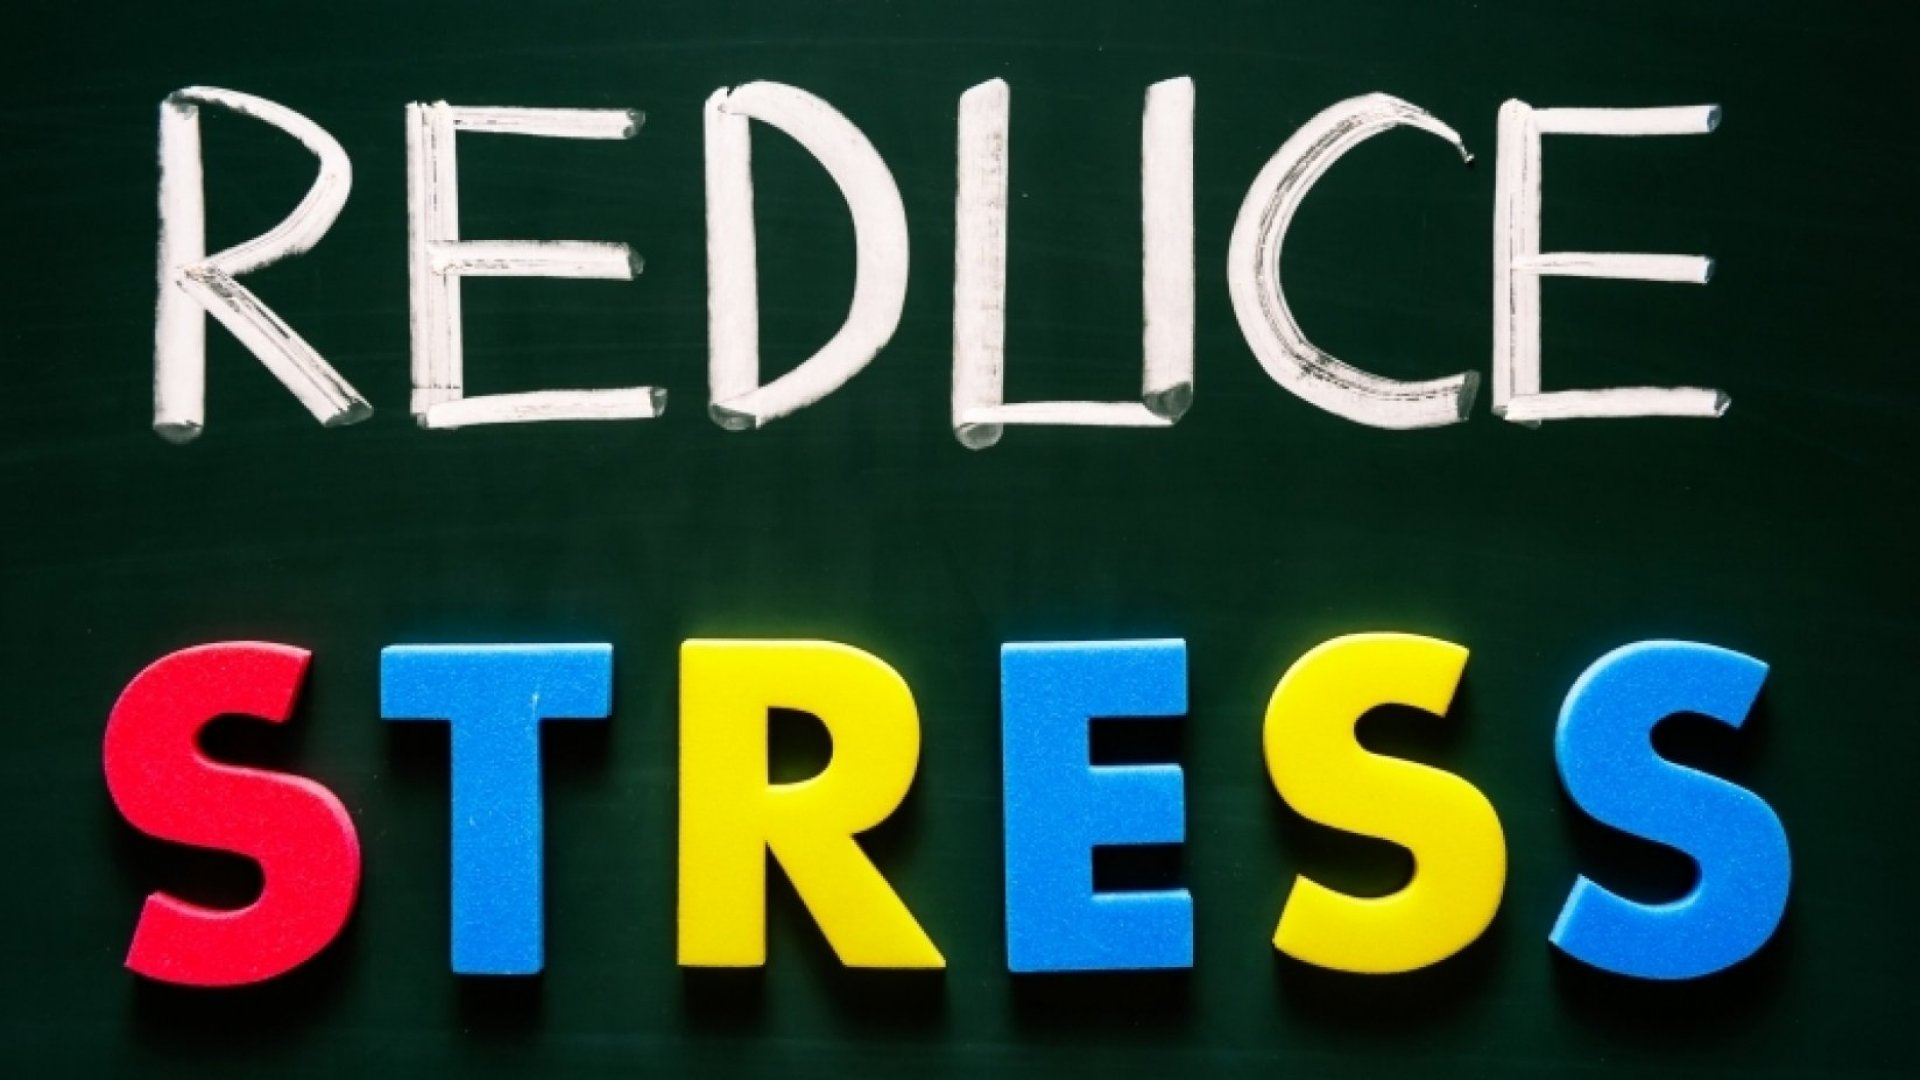 10 Tips to Reduce Stress by Leveraging Your Strengths